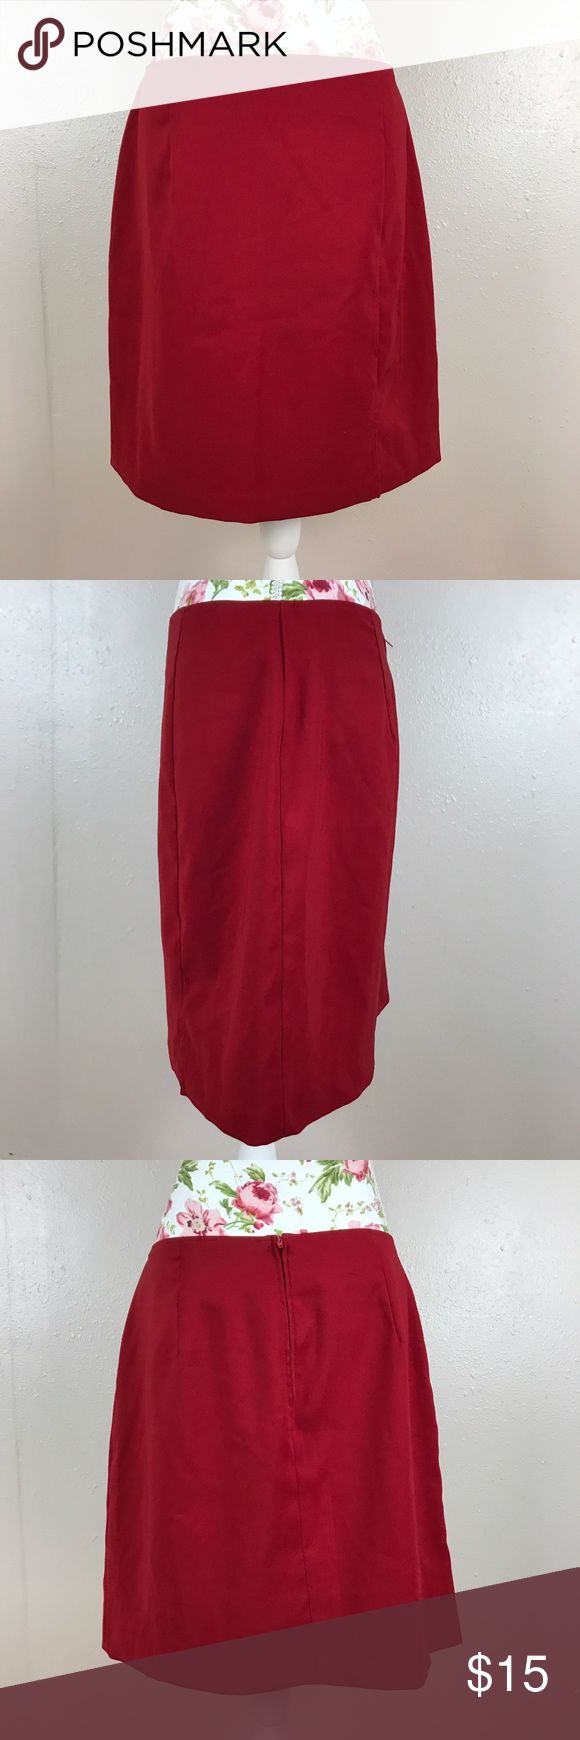 Red skirt Shorter red skirt office appropriate. 97% polyester 3% spandex. Size 13/14. No brand tag. Lying flat and unstretched approximate measurements are waist 16 inches length 19 inches Skirts Mini